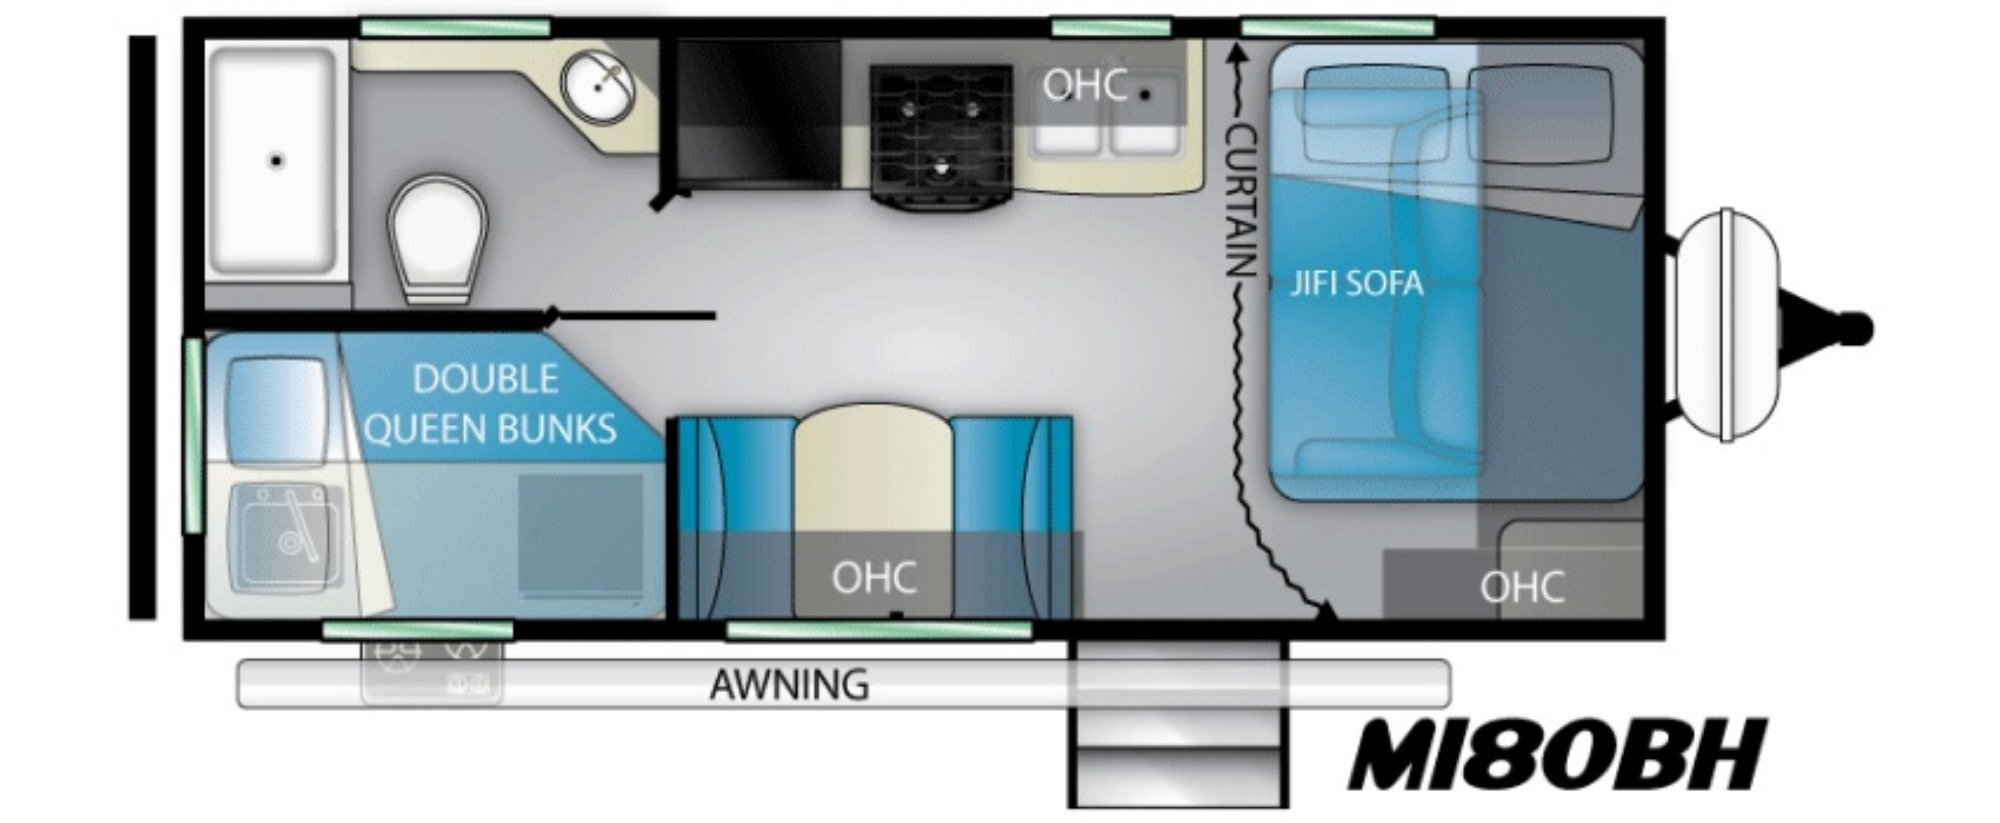 View Floor Plan for 2021 HEARTLAND MALLARD M180BH